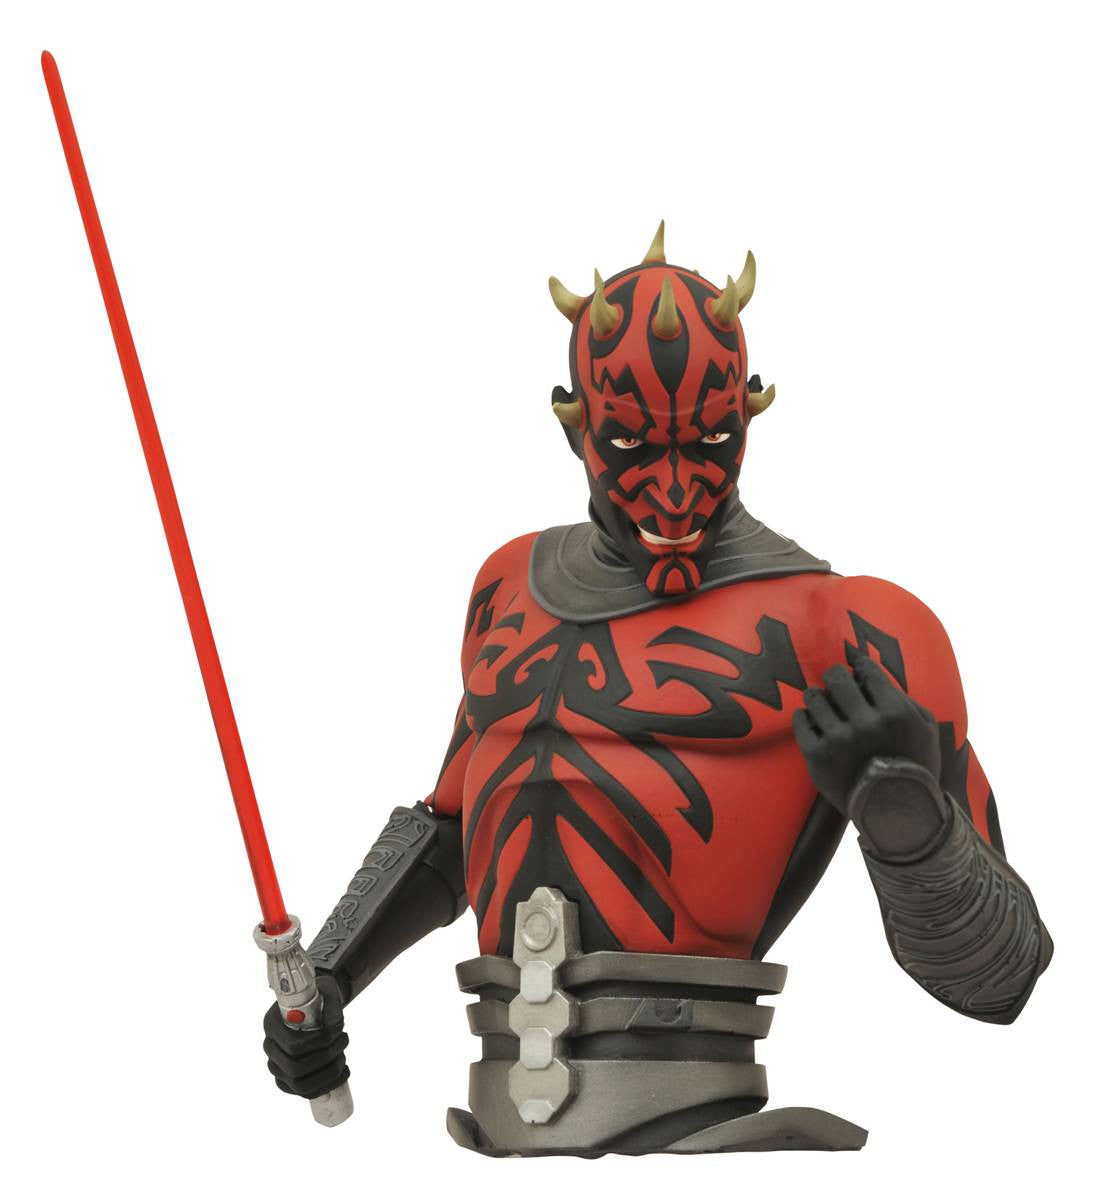 Star wars Clone wars Darth Maul Bust Bank-Diamond Select toys- www.superherotoystore.com-Bust Bank